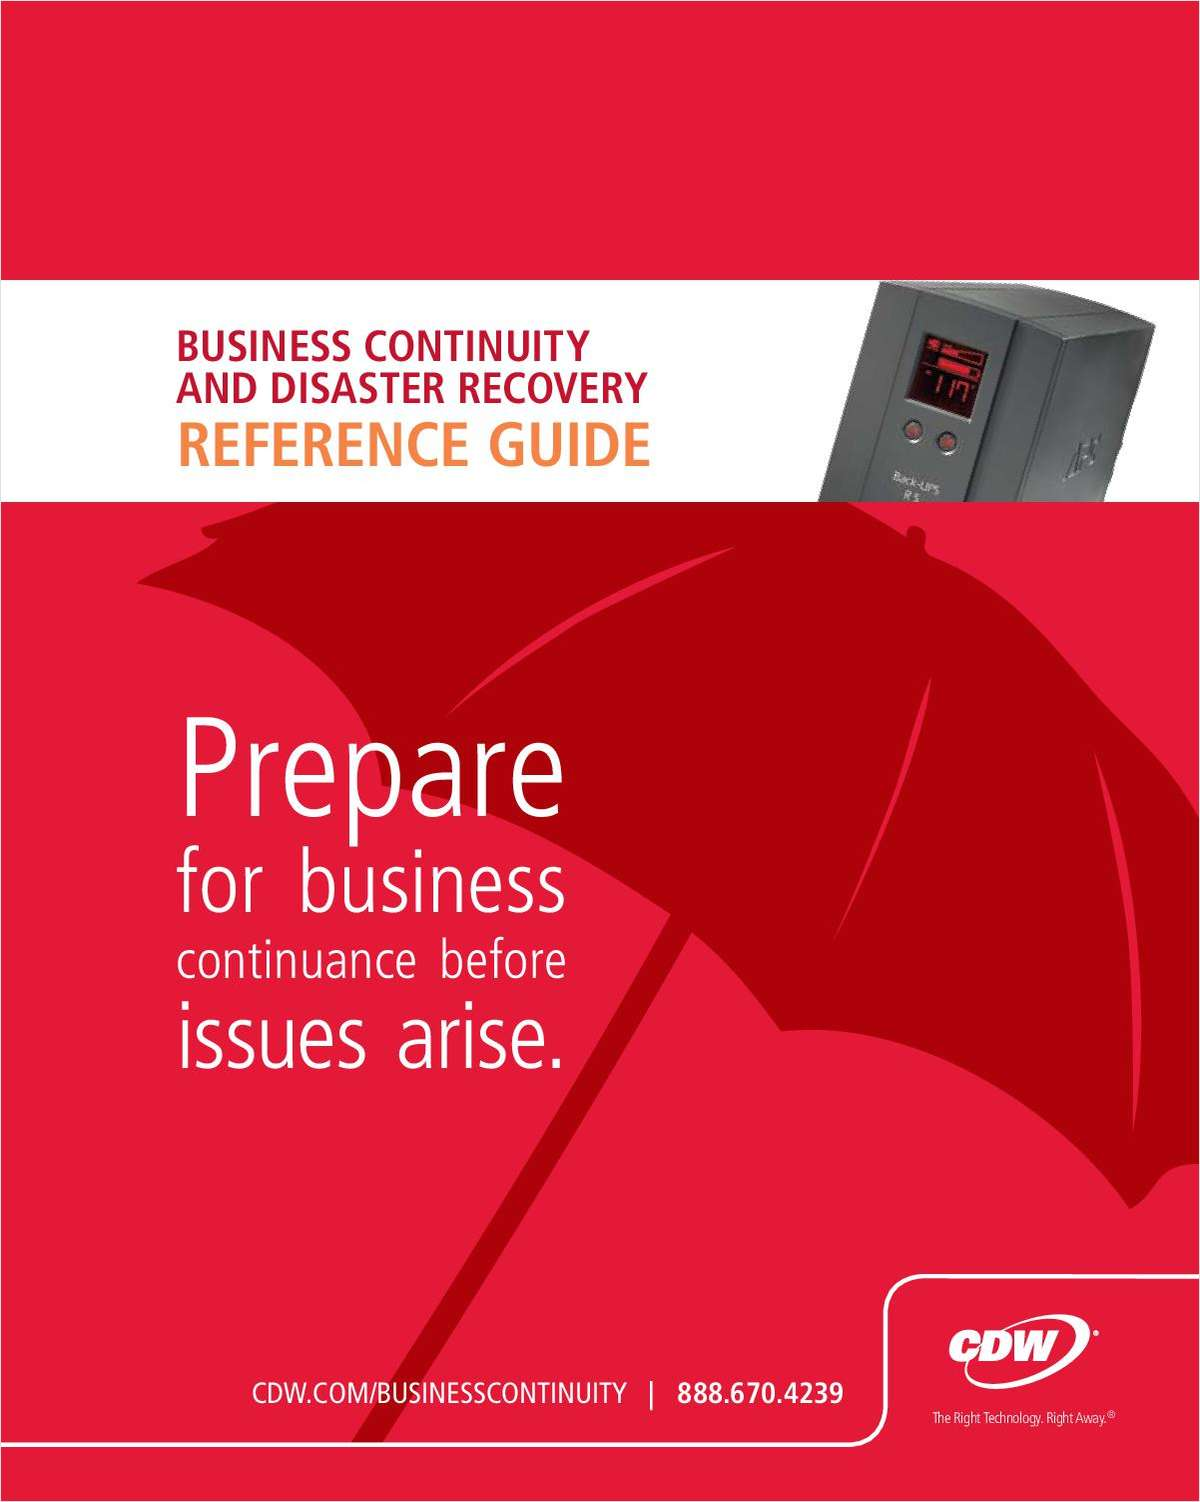 Business Continuity and Disaster Recovery Guide